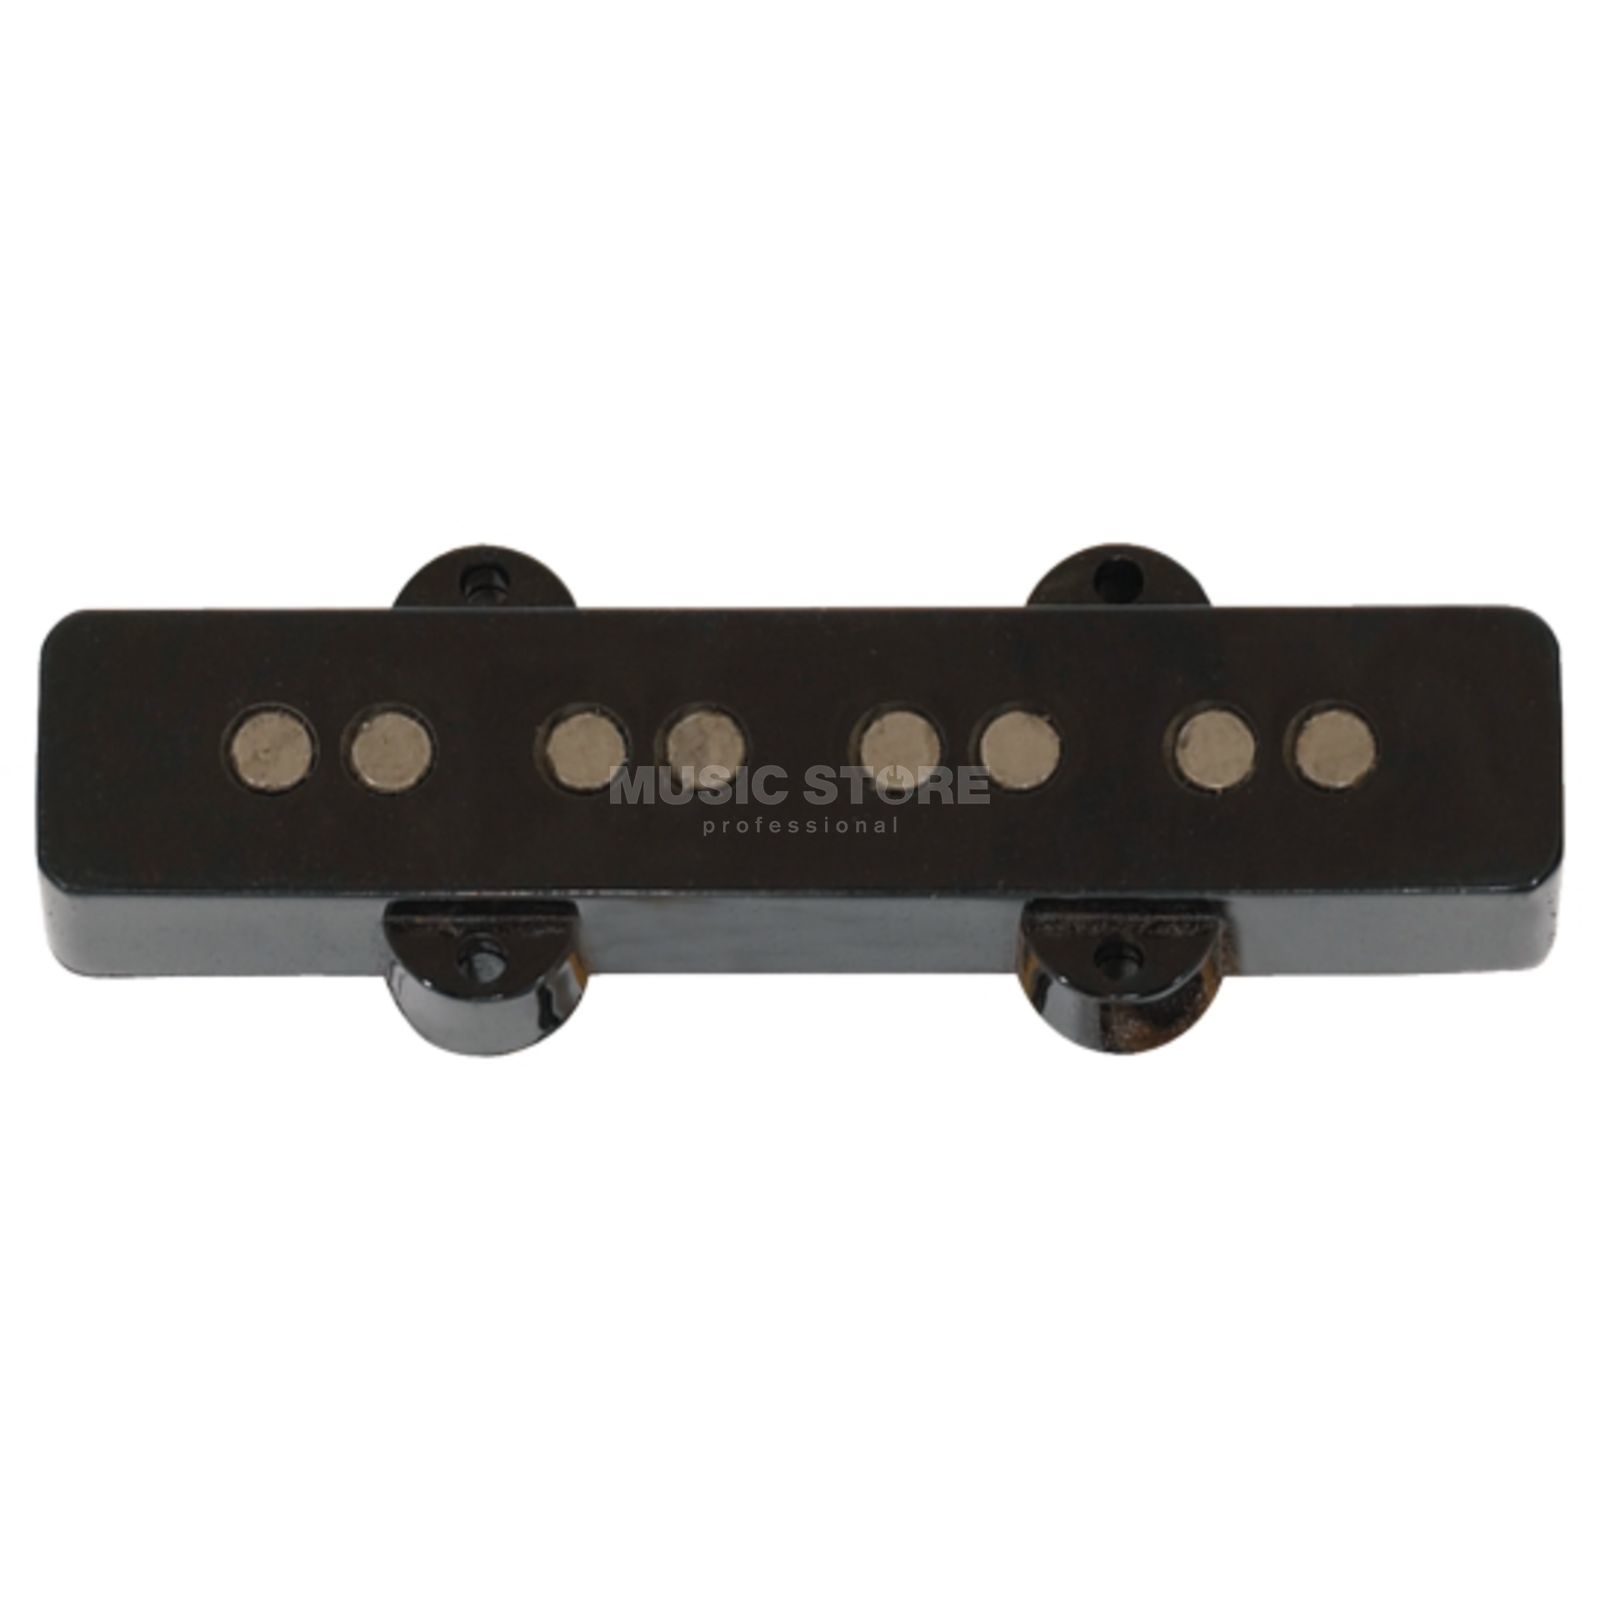 Seymour Duncan SANTII-JJB B Antiquity 2 J-Bas Bridge Jive 2-phase Изображение товара